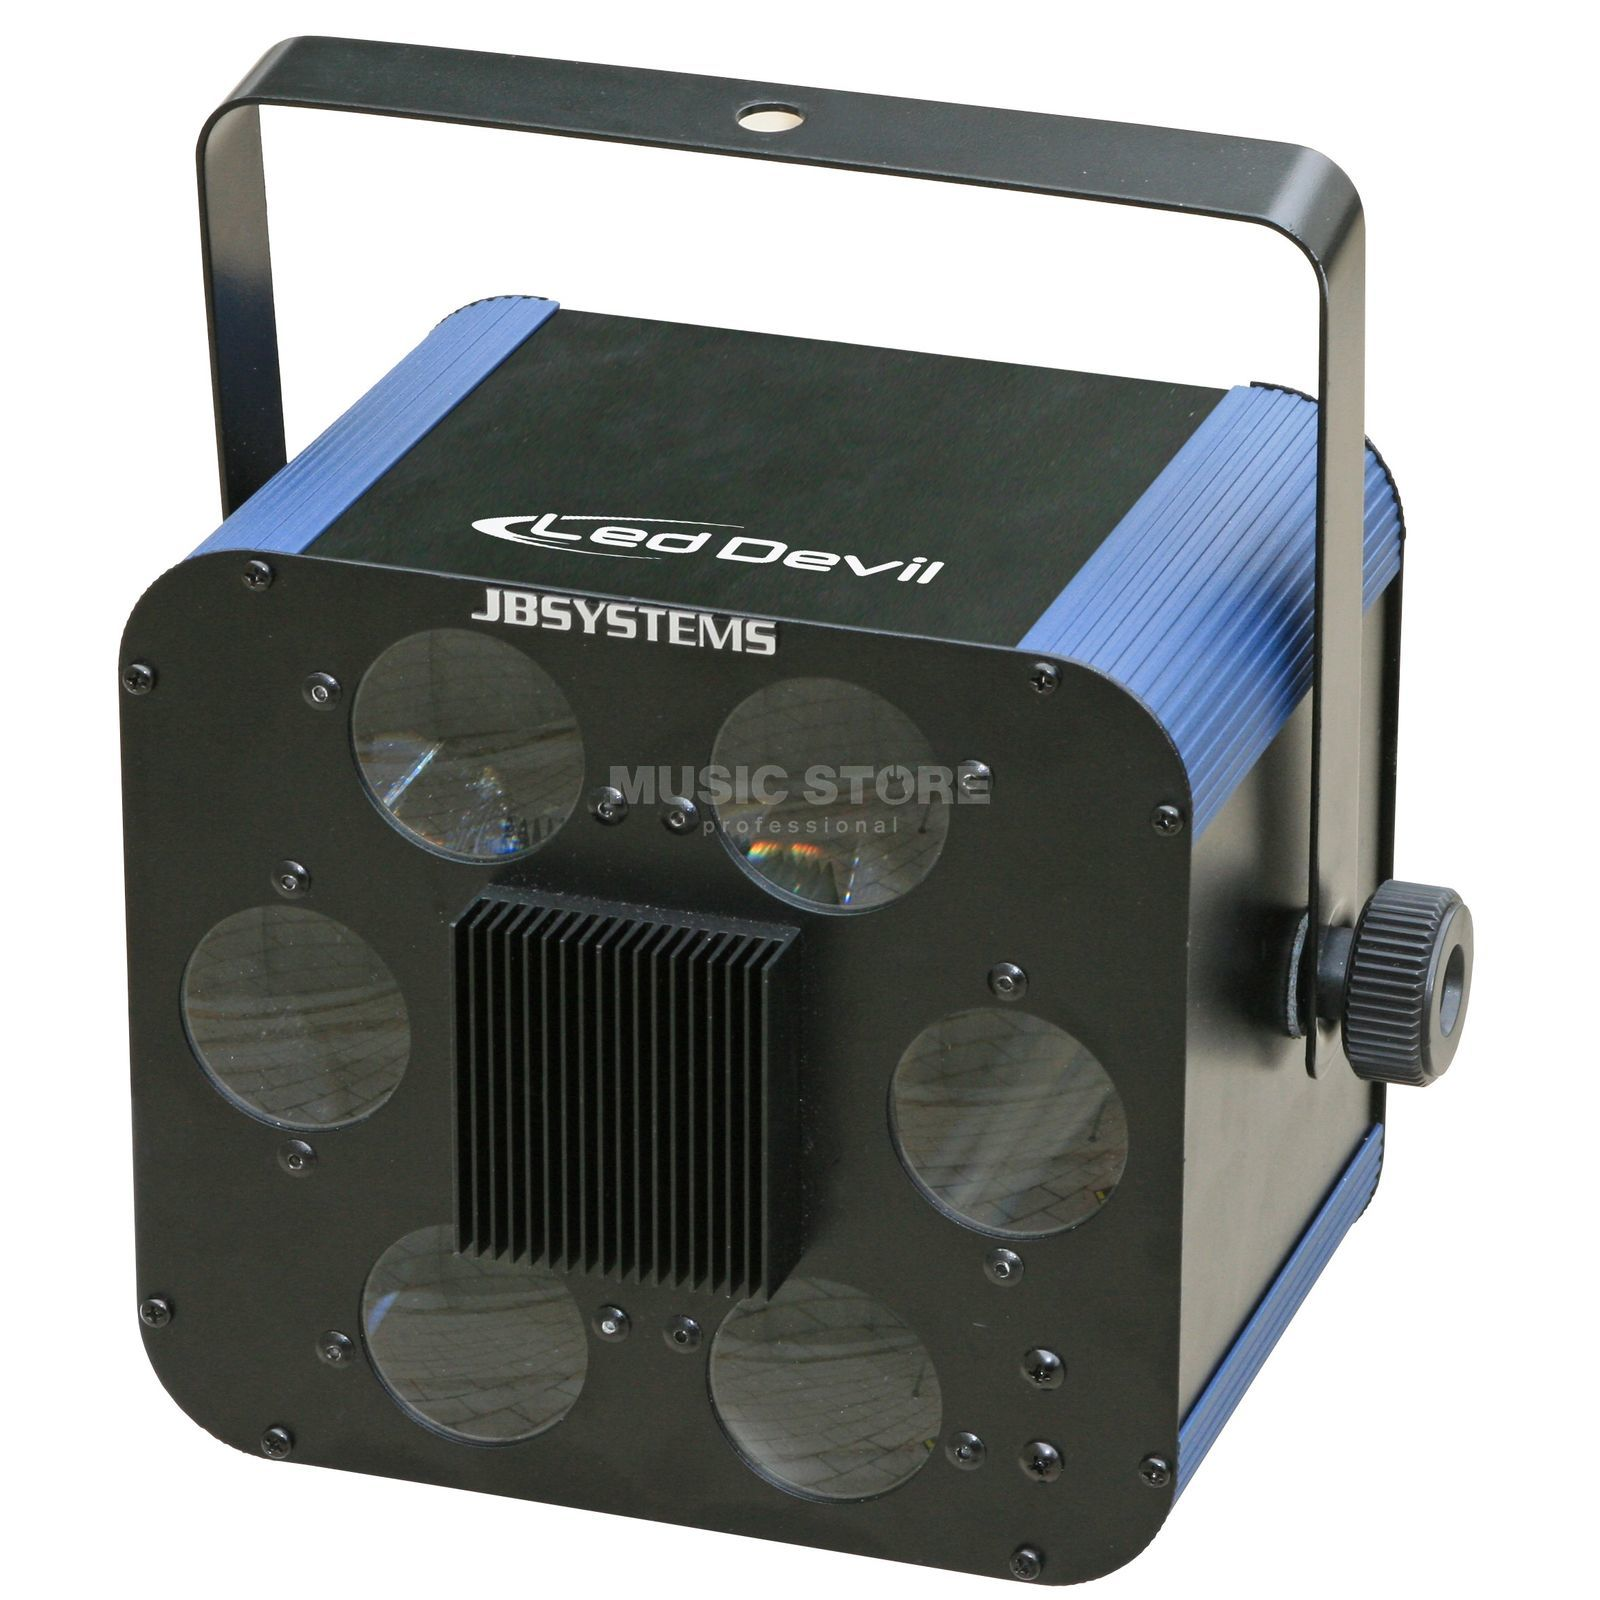 JB Systems LED Devil II mit 10W High Power LED (RGBW) Produktbild